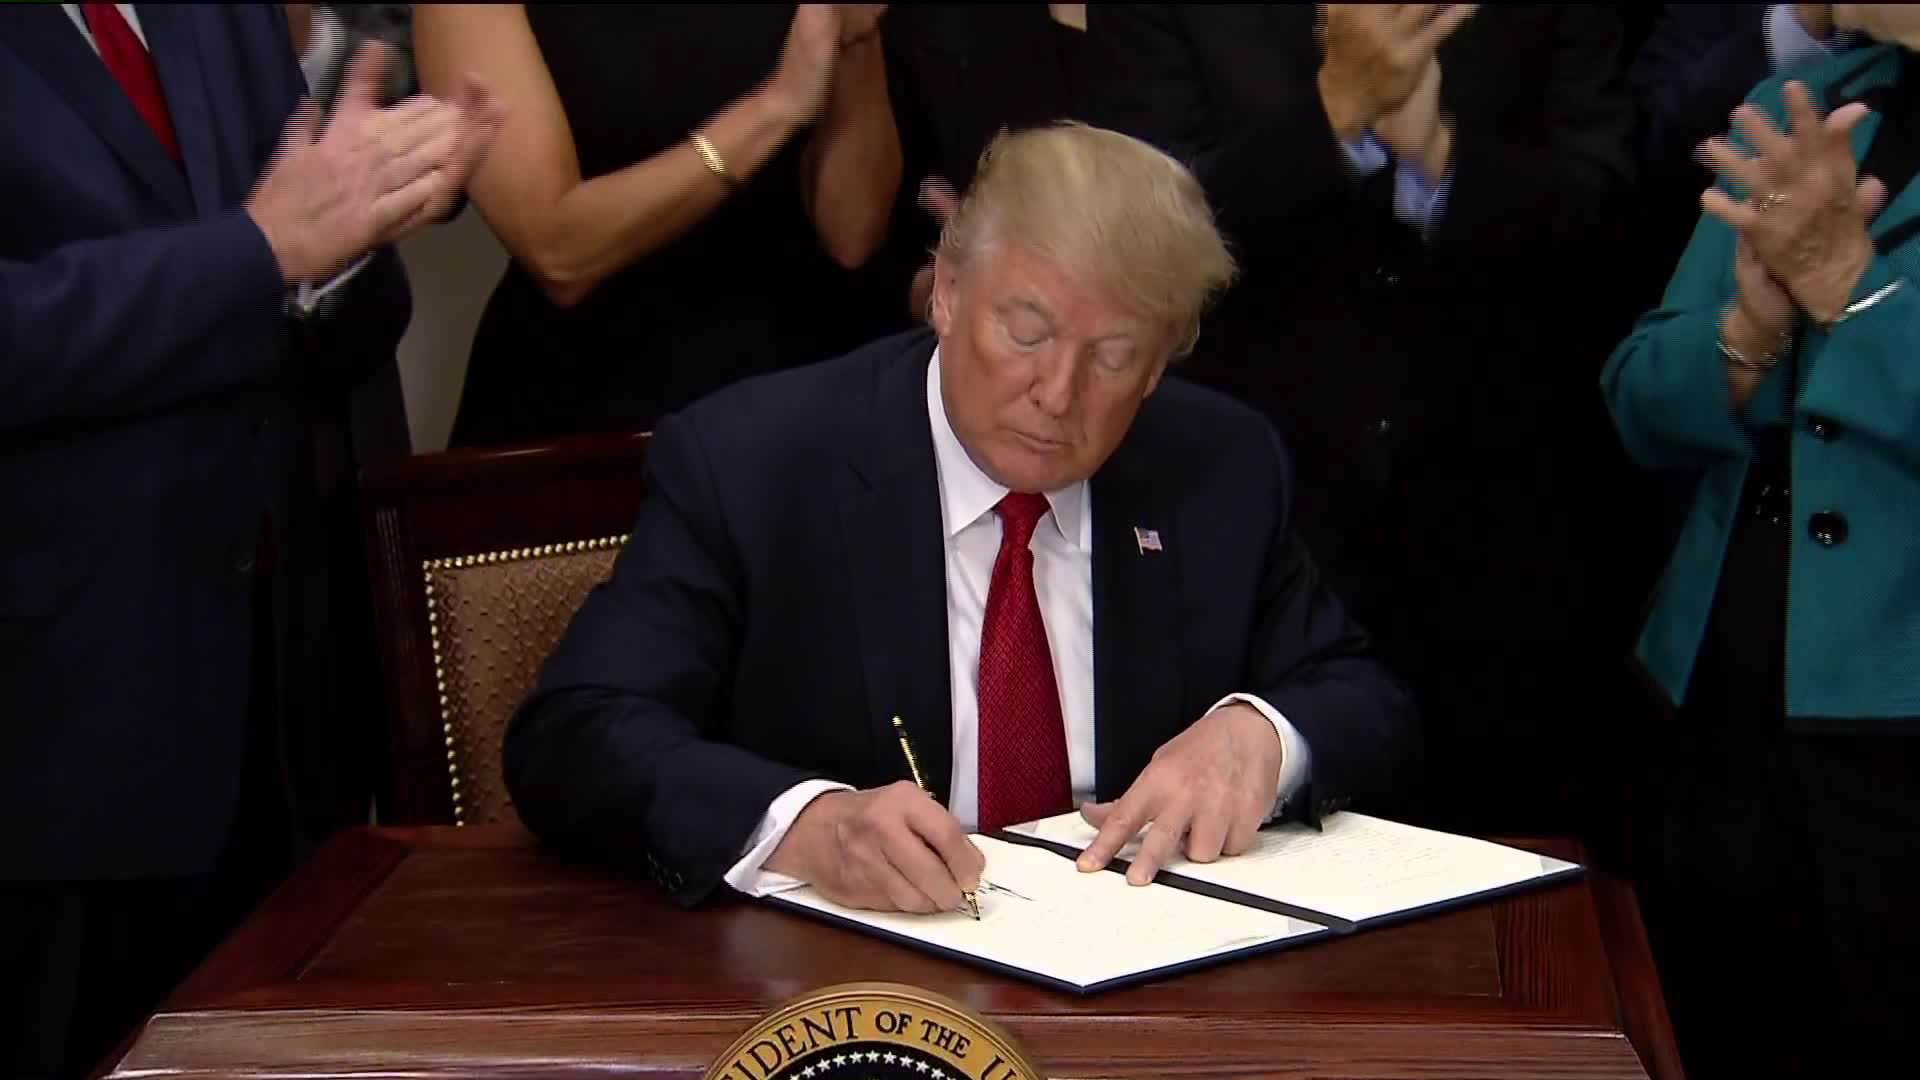 President Trump signed an executive order on health care at the White House on Oct. 12, 2017. (Credit: Pool)